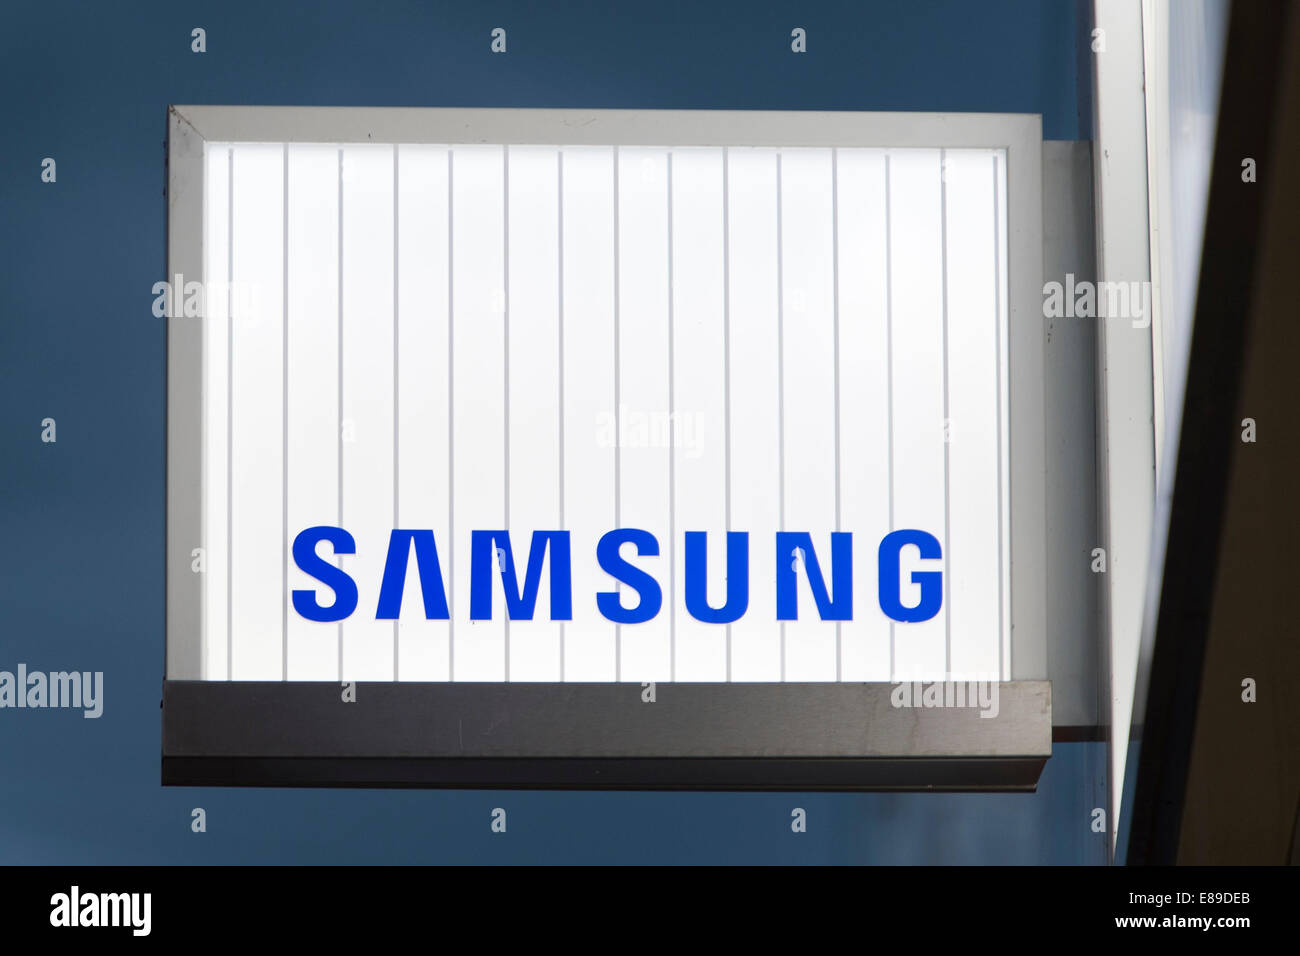 A Samsung electronics retail store sign. - Stock Image